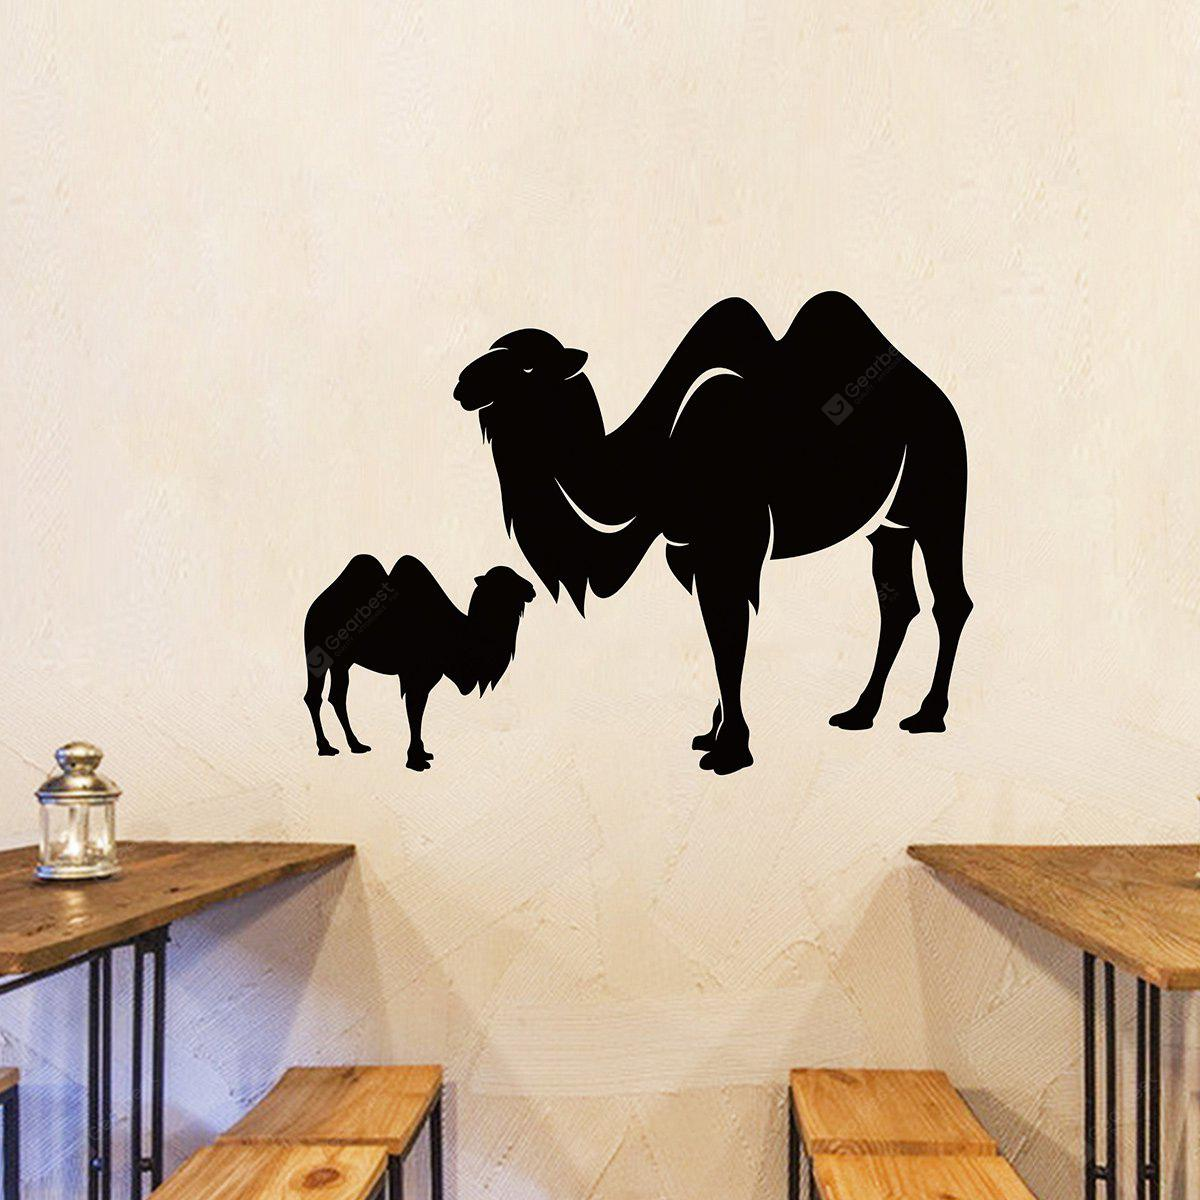 Camel Animal Vinyl Wall Wall Wall